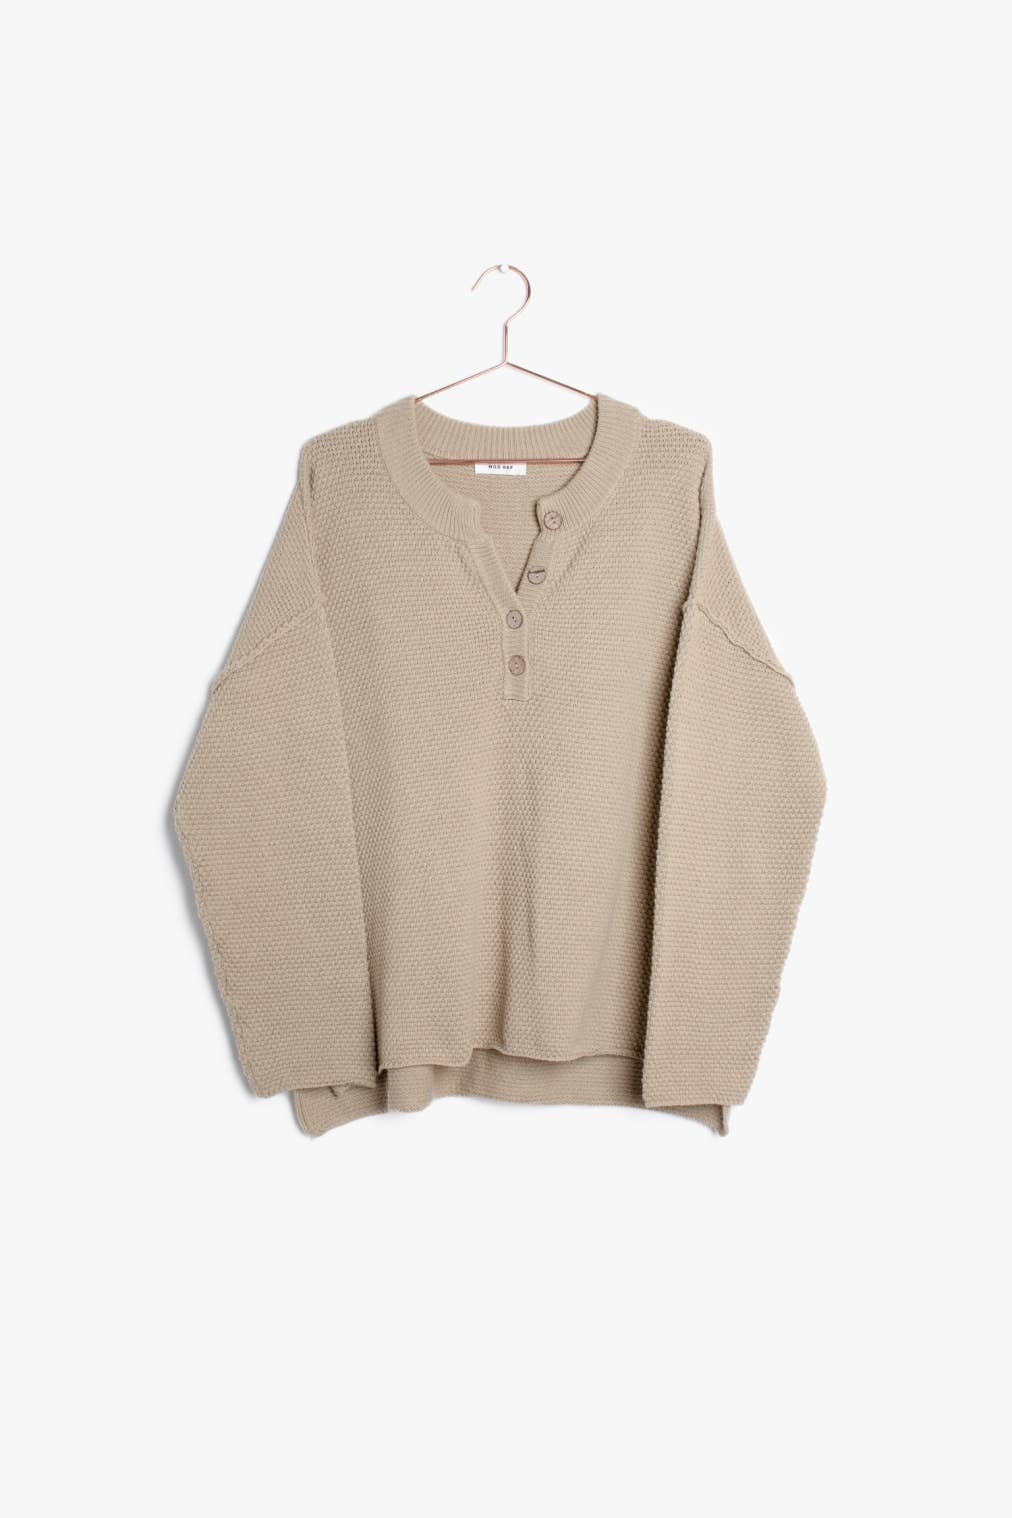 Catalina Sweater Front View Khaki